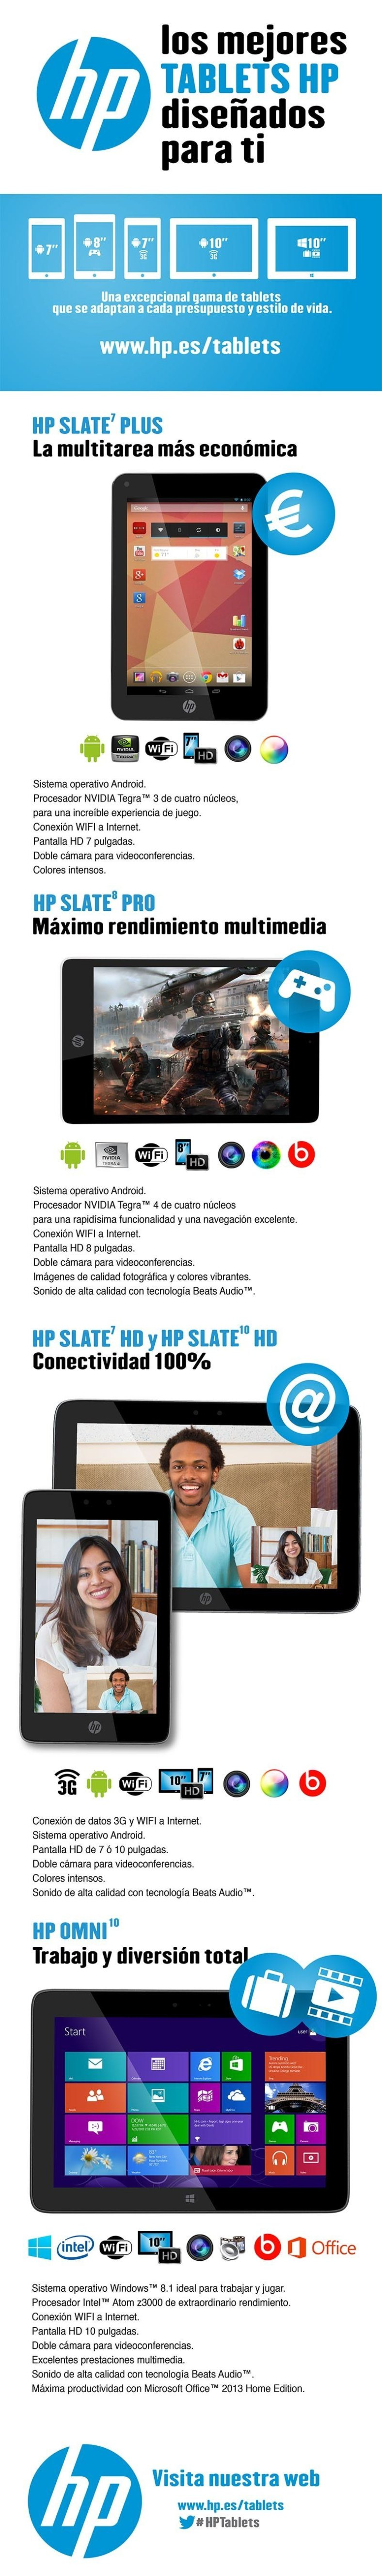 infografia-tablets-hp